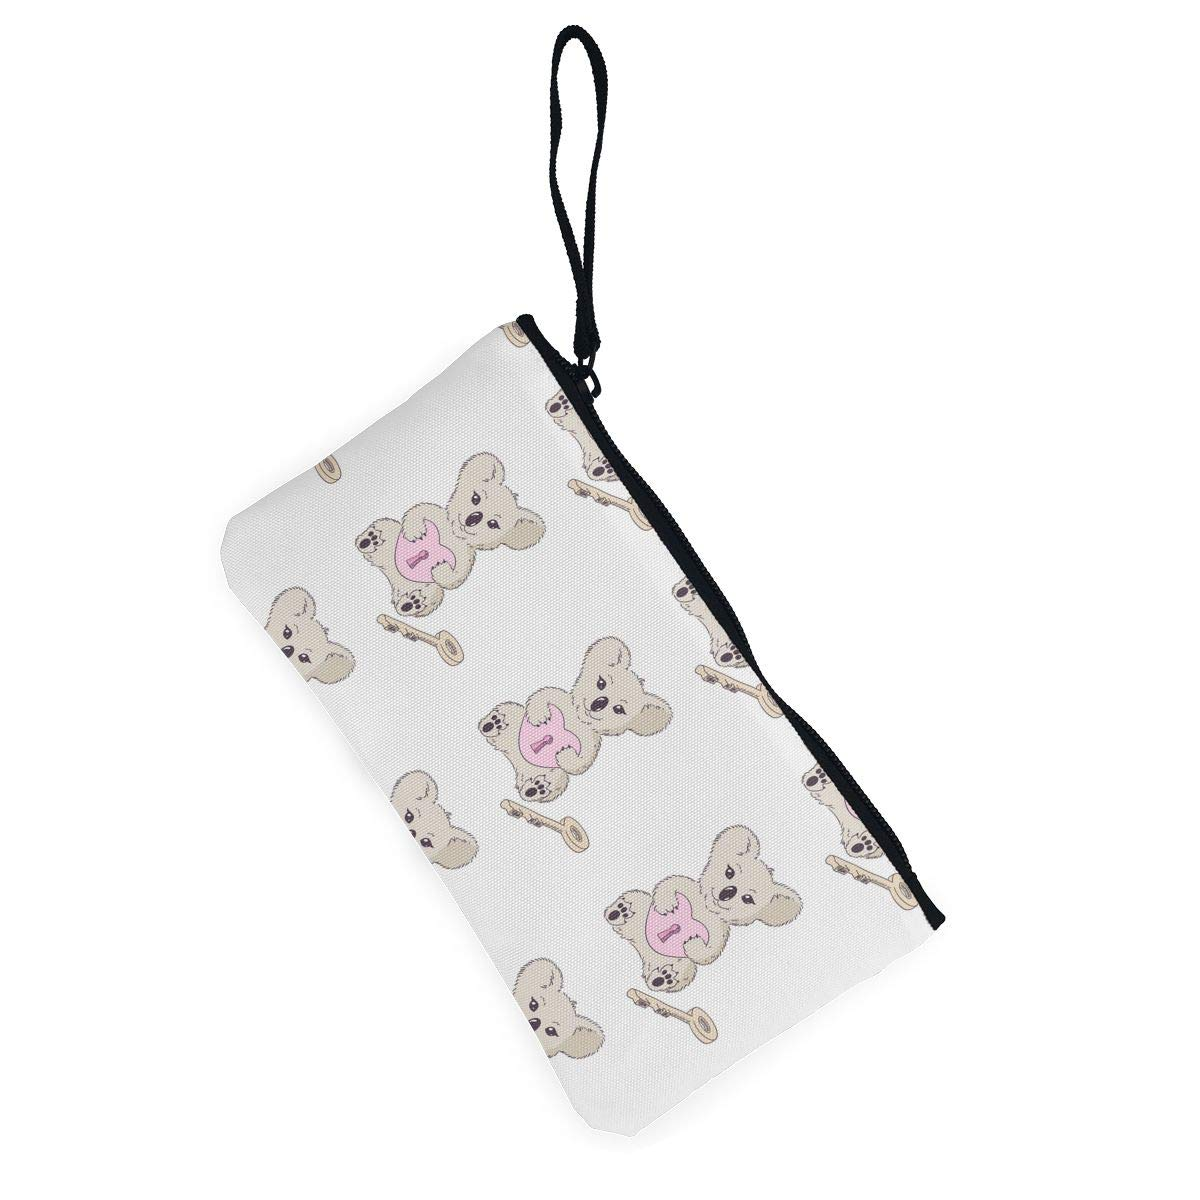 Koala with Heart Pattern Canvas Coin Purse Cute Change Pouch Wallet Bag Multifunctional Cellphone Bag with Handle